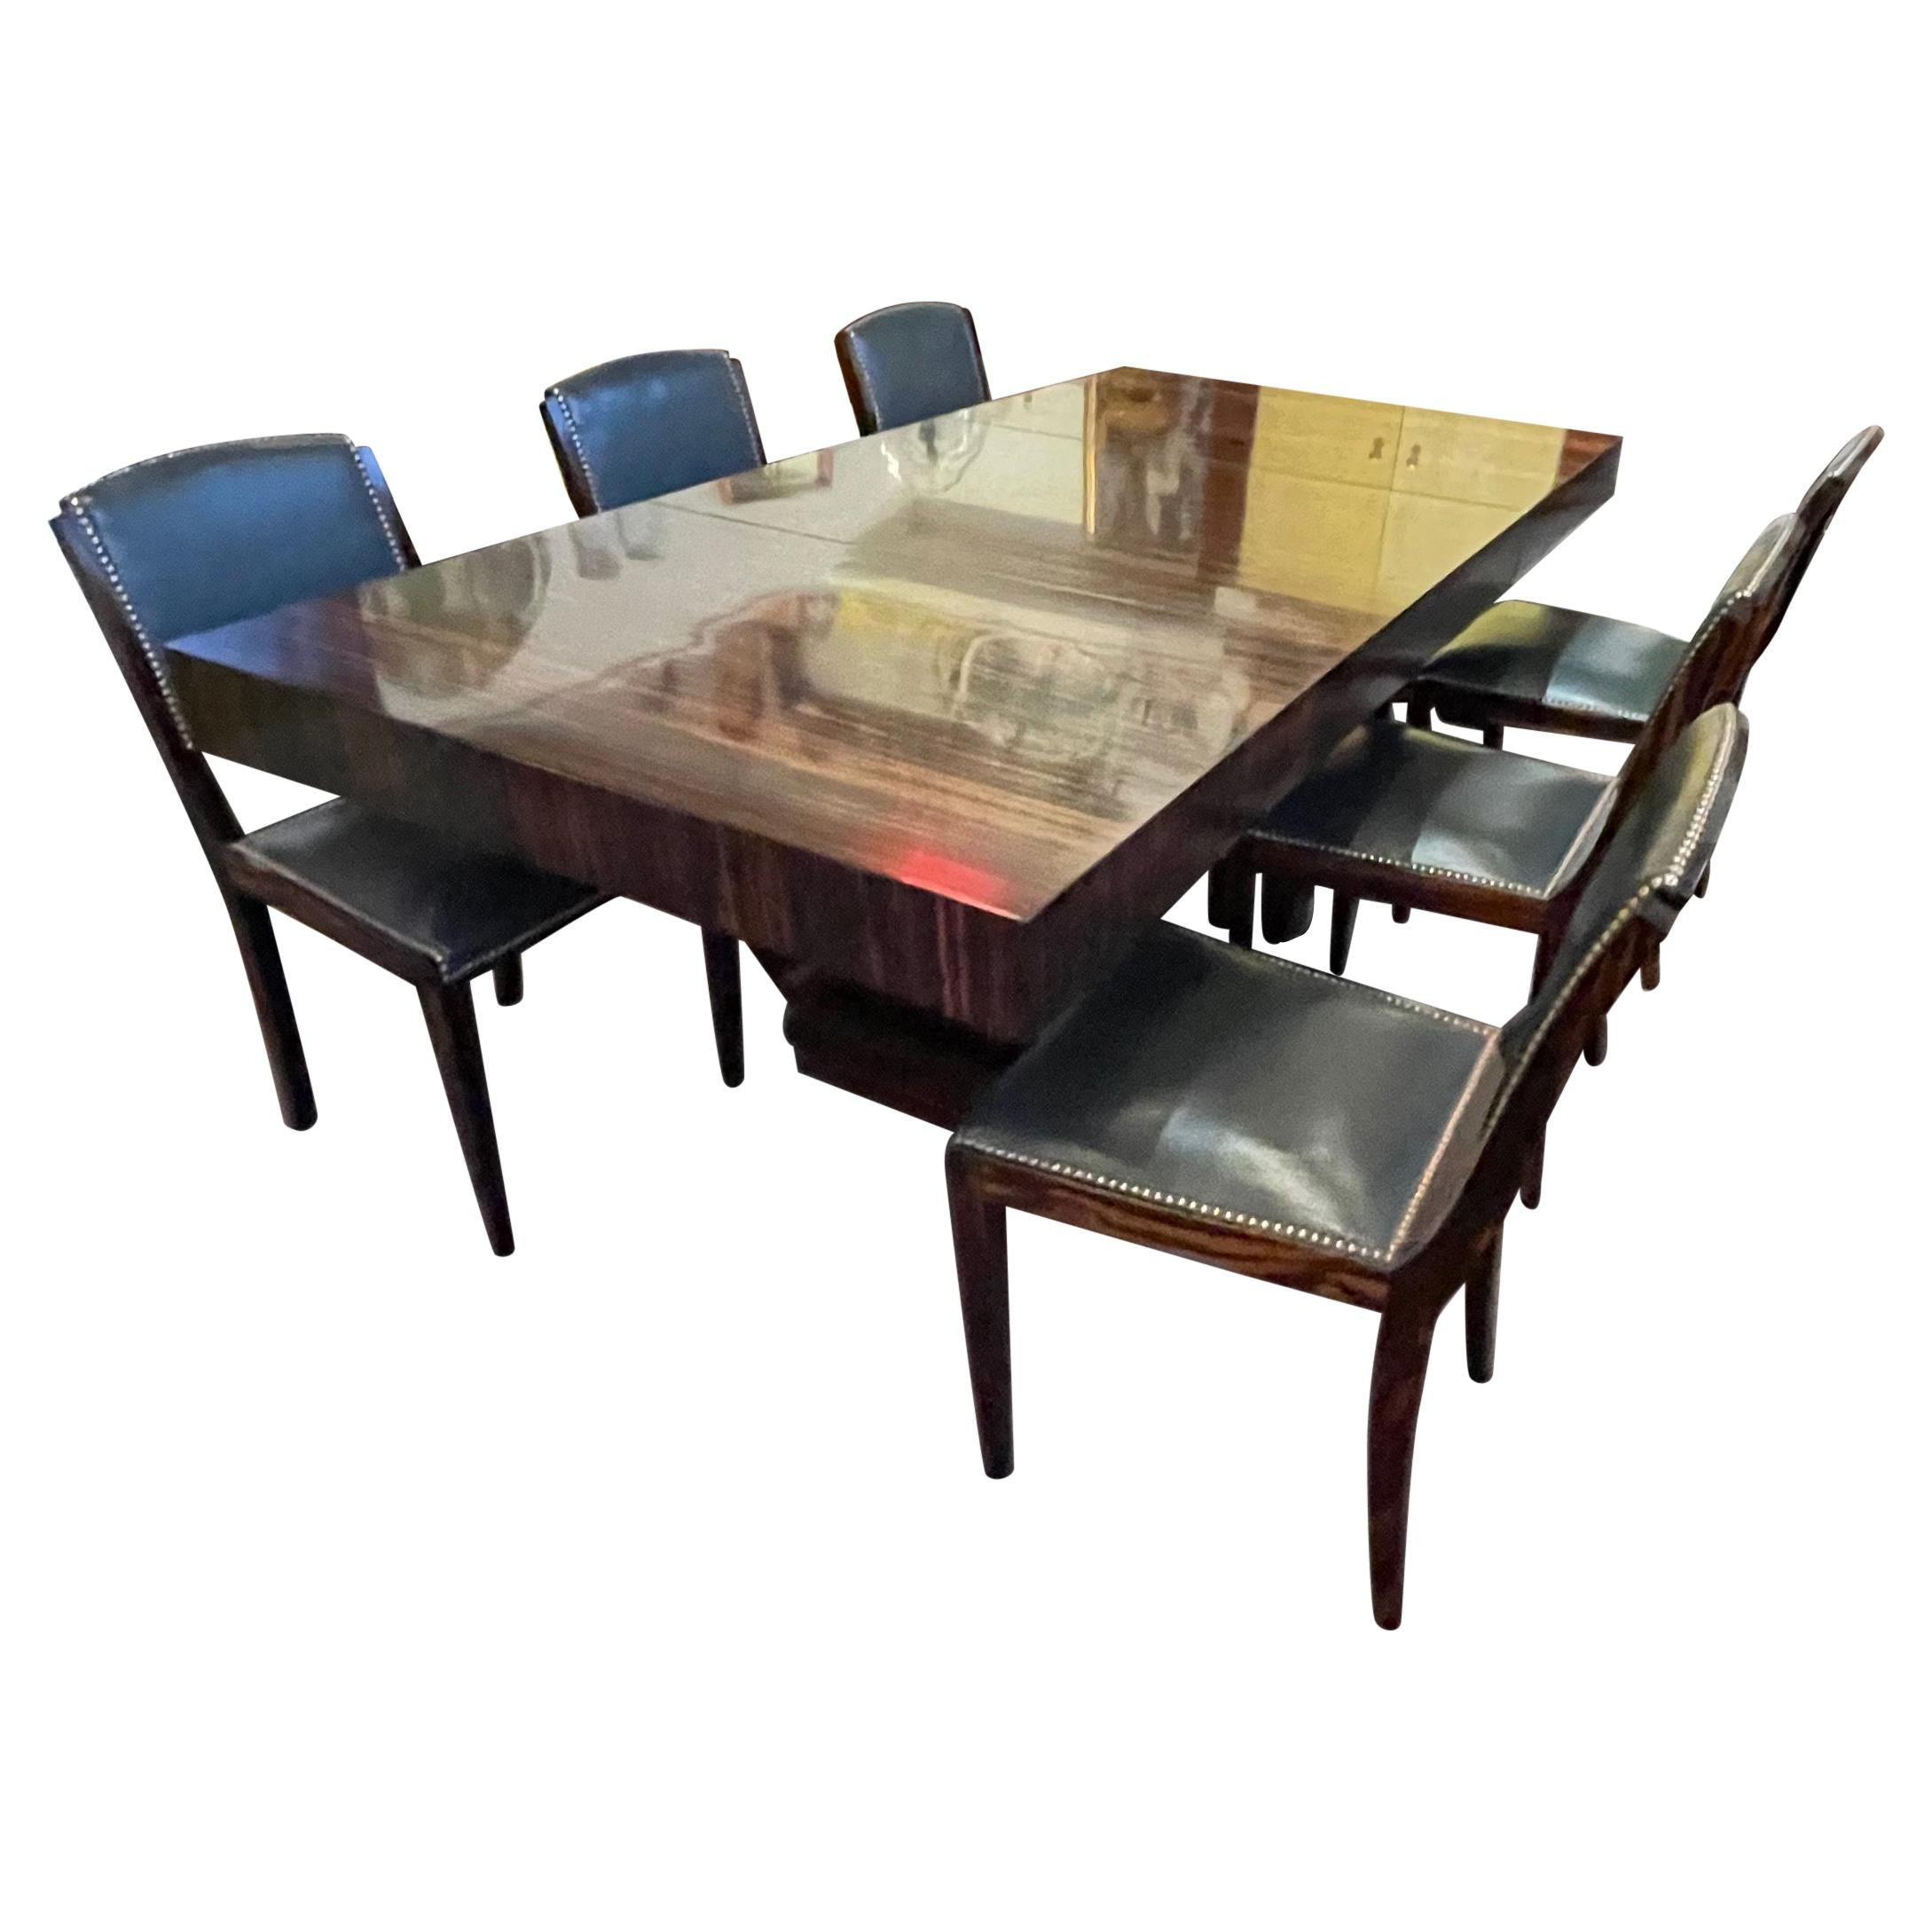 French Modernist Art Deco Macassar Wood Dining Table and 6 Matching Chairs